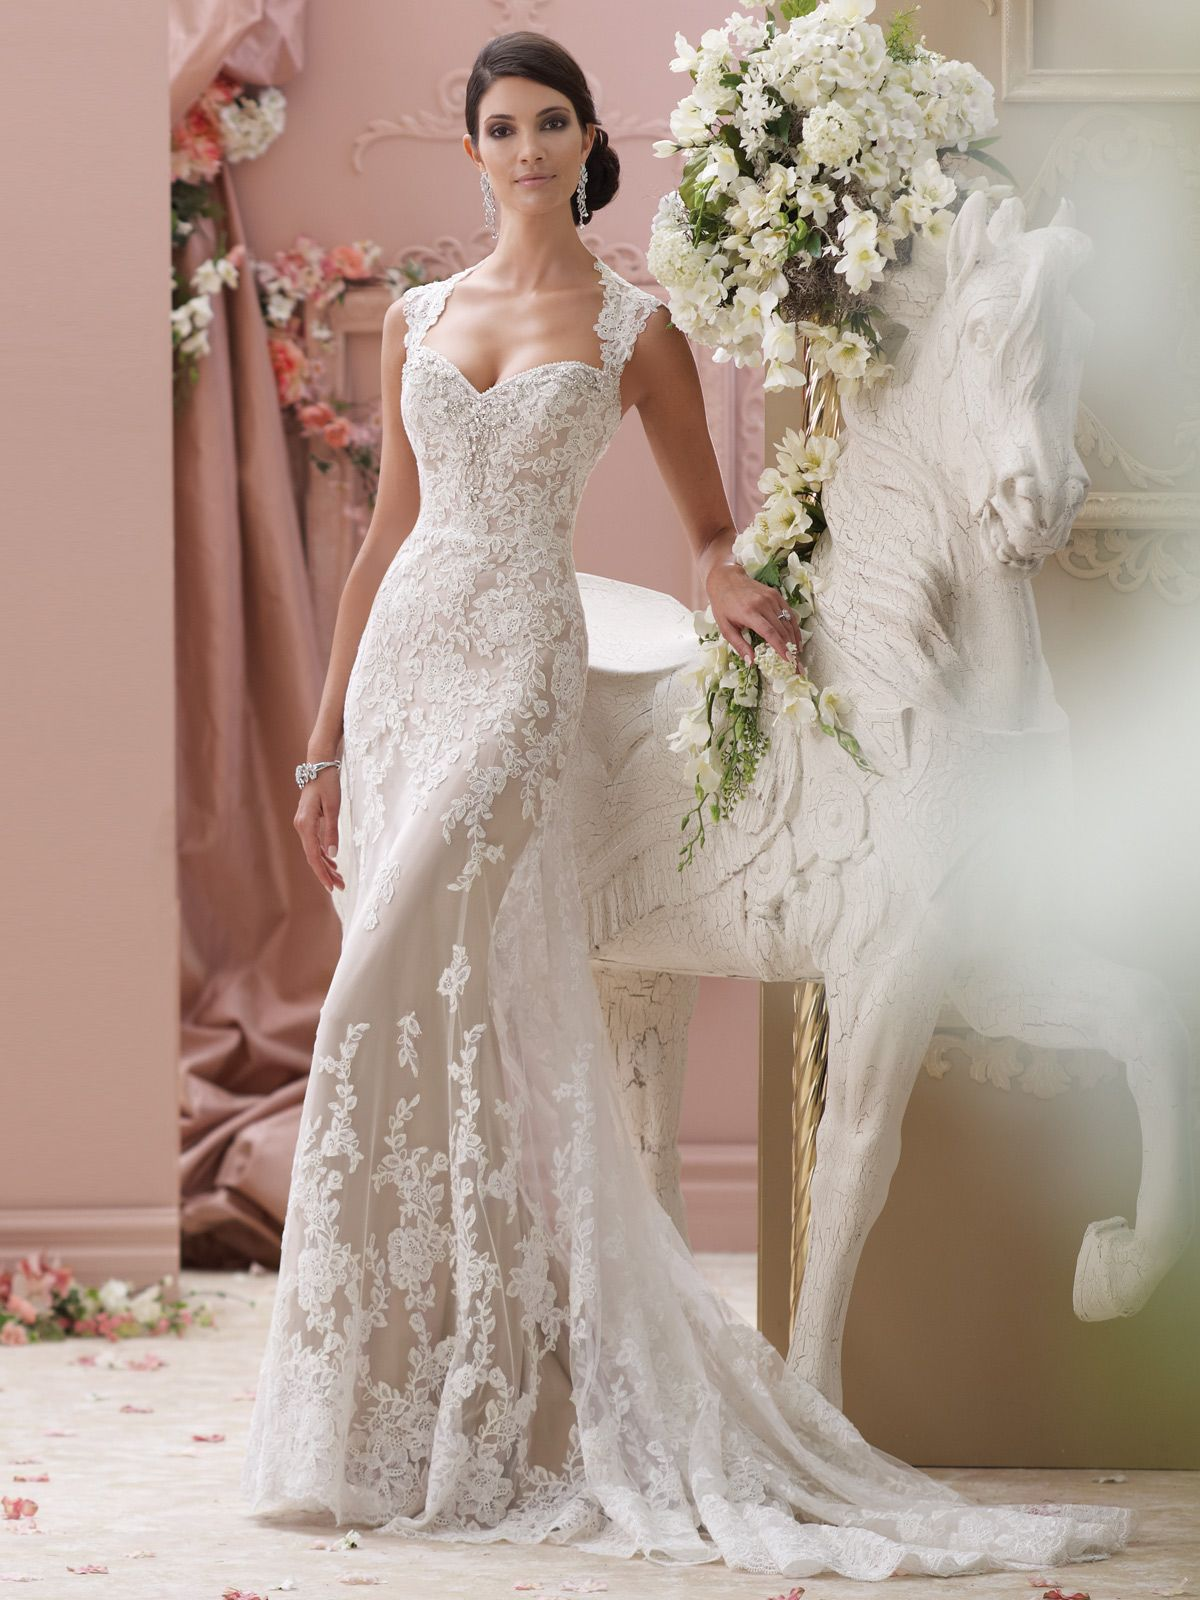 Wedding Dress Www.wedding Dresses 2015 china in stock dresses seller chinese arabic store from amelia sposa 2015 mermaid wedding vintage bateau nec